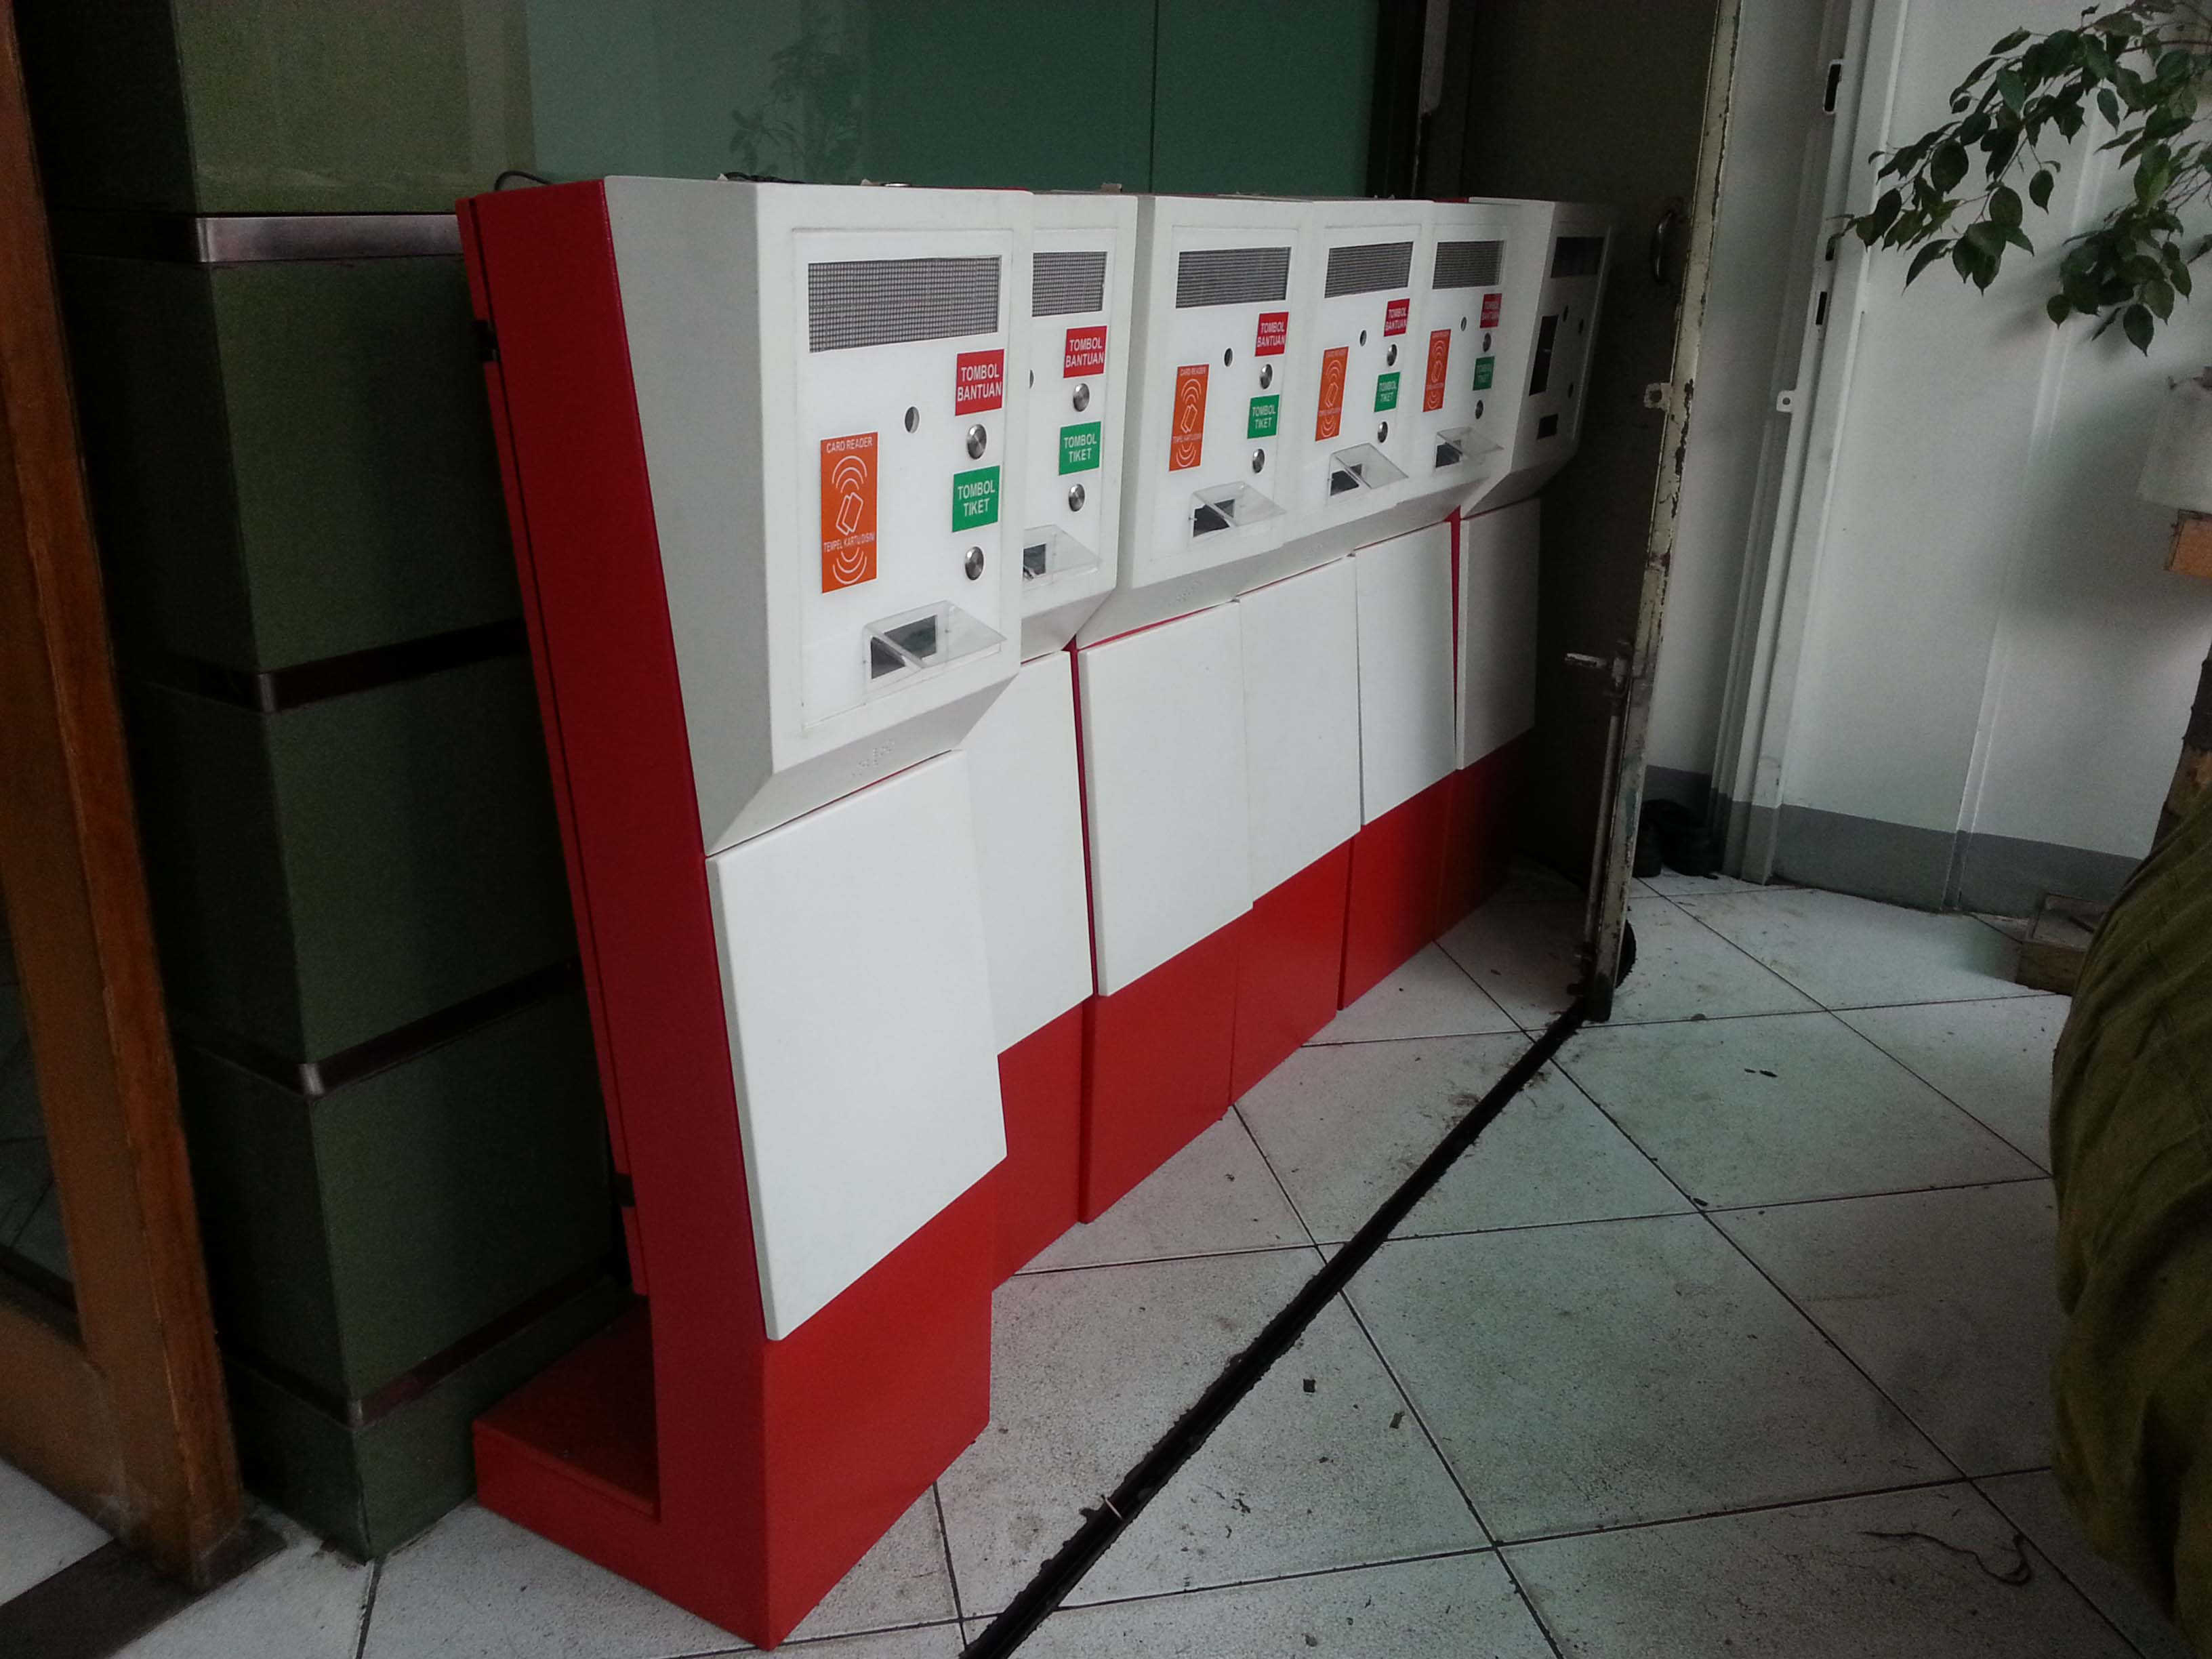 Ticket dispenser